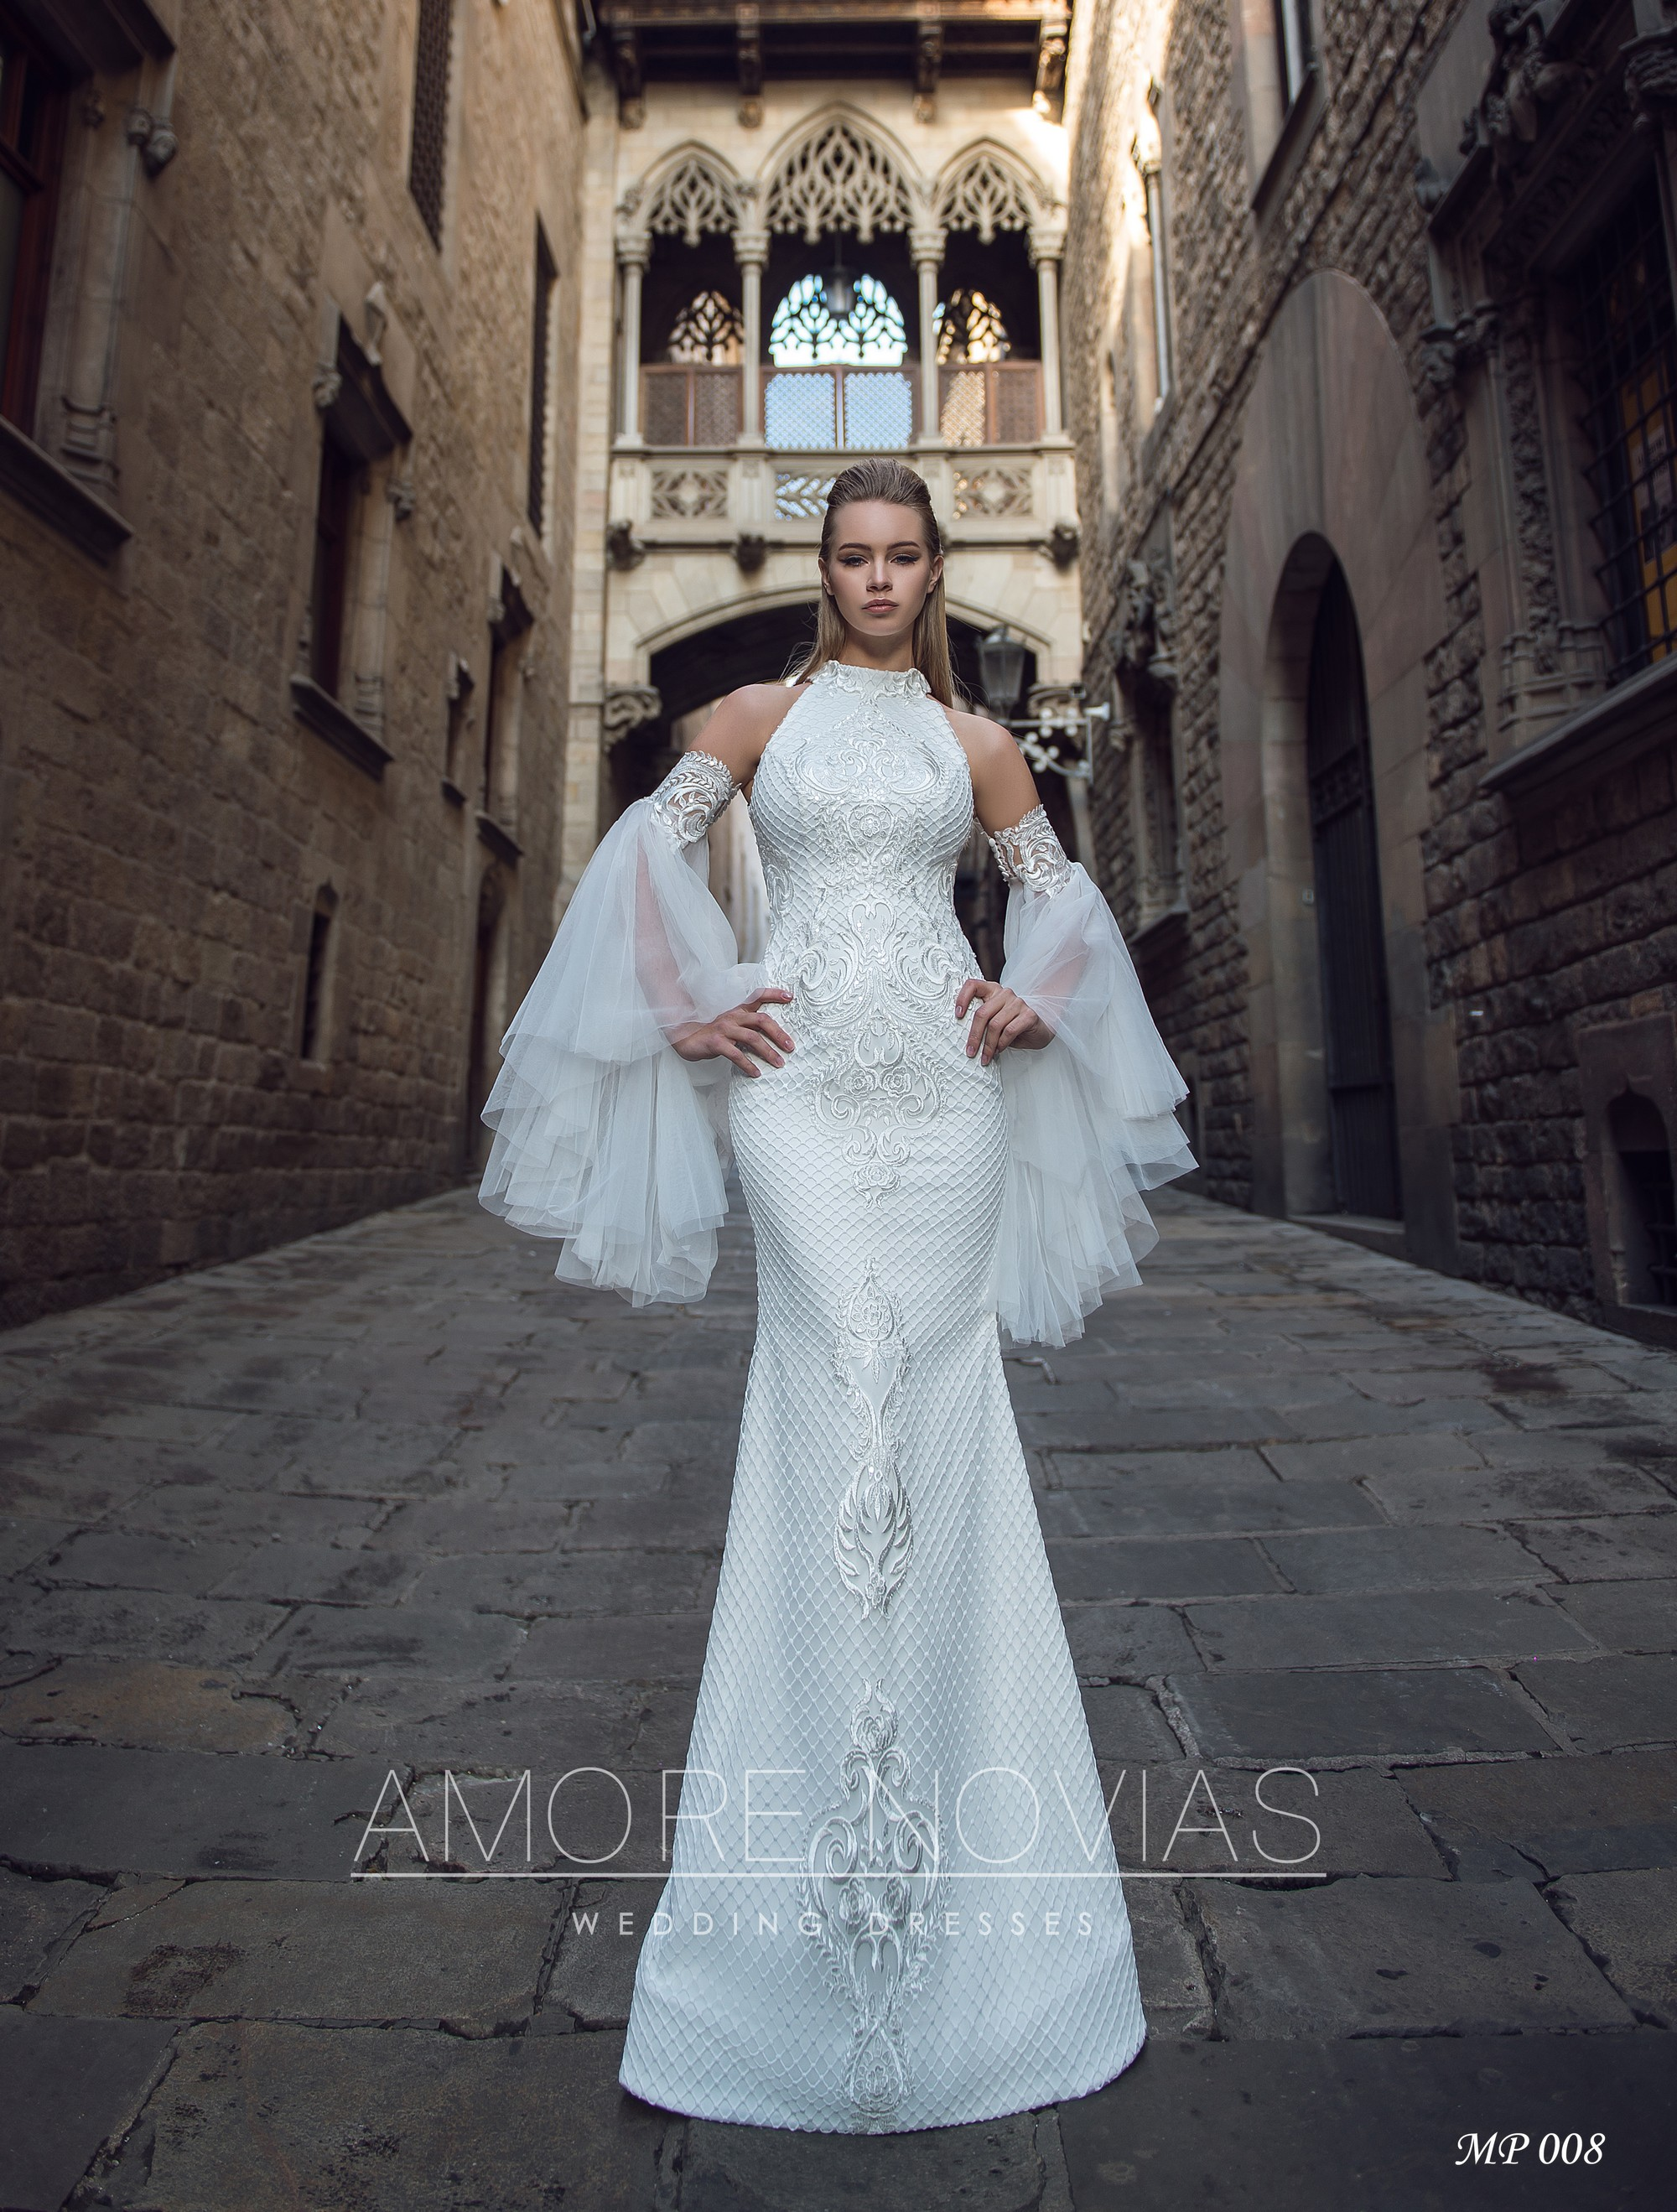 https://amore-novias.com/images/stories/virtuemart/product/mp-008--------(1)5.jpg